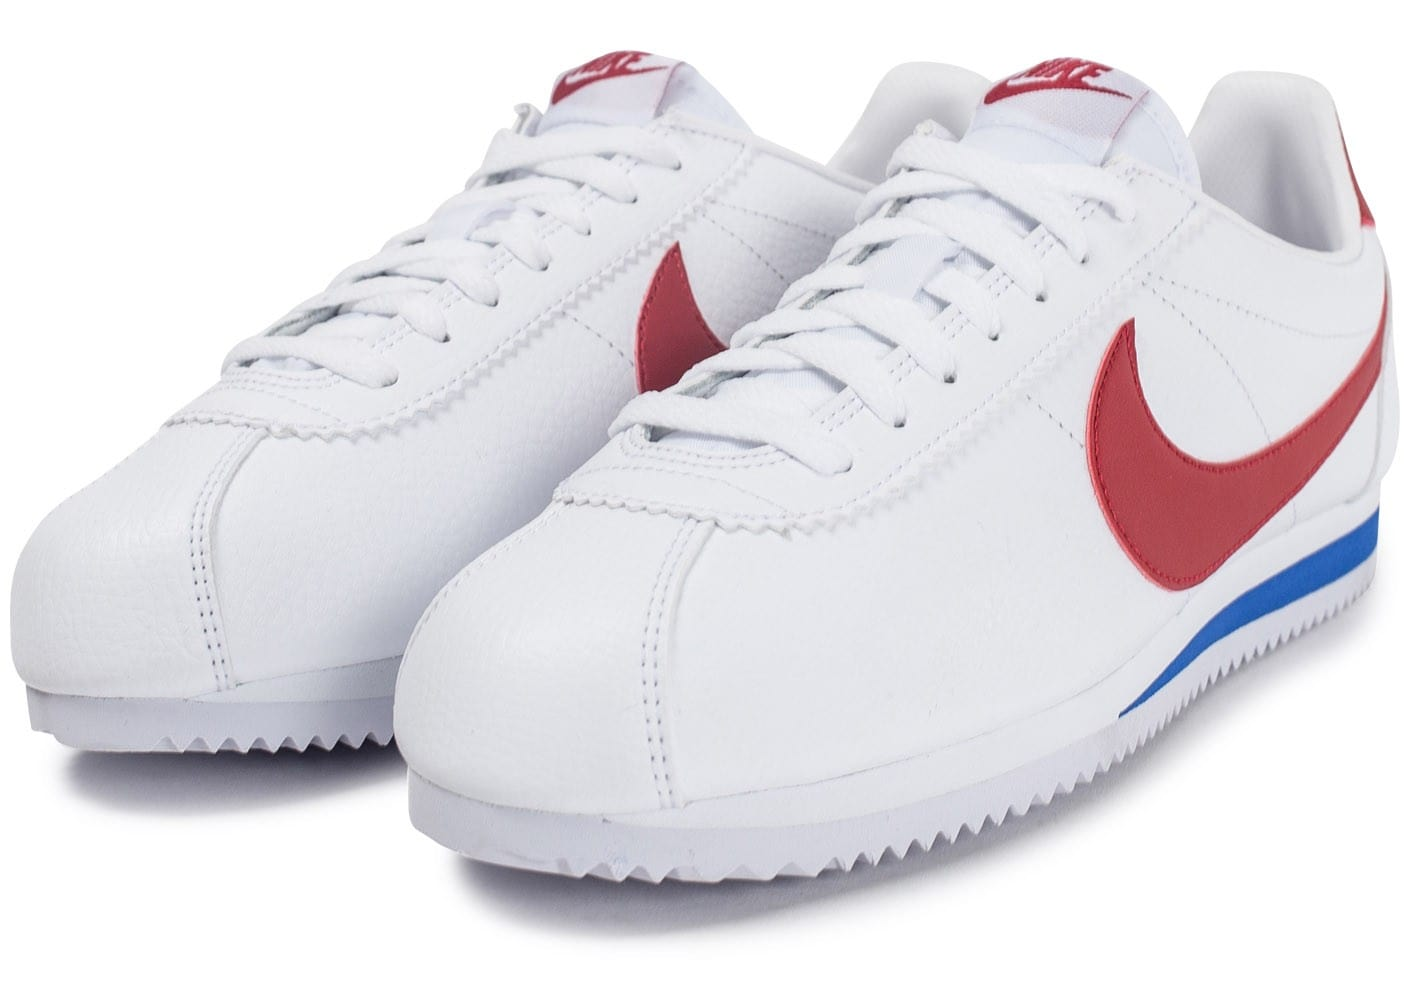 Nike Cortez Leather Blanche rouge et bleue - Chaussures ...